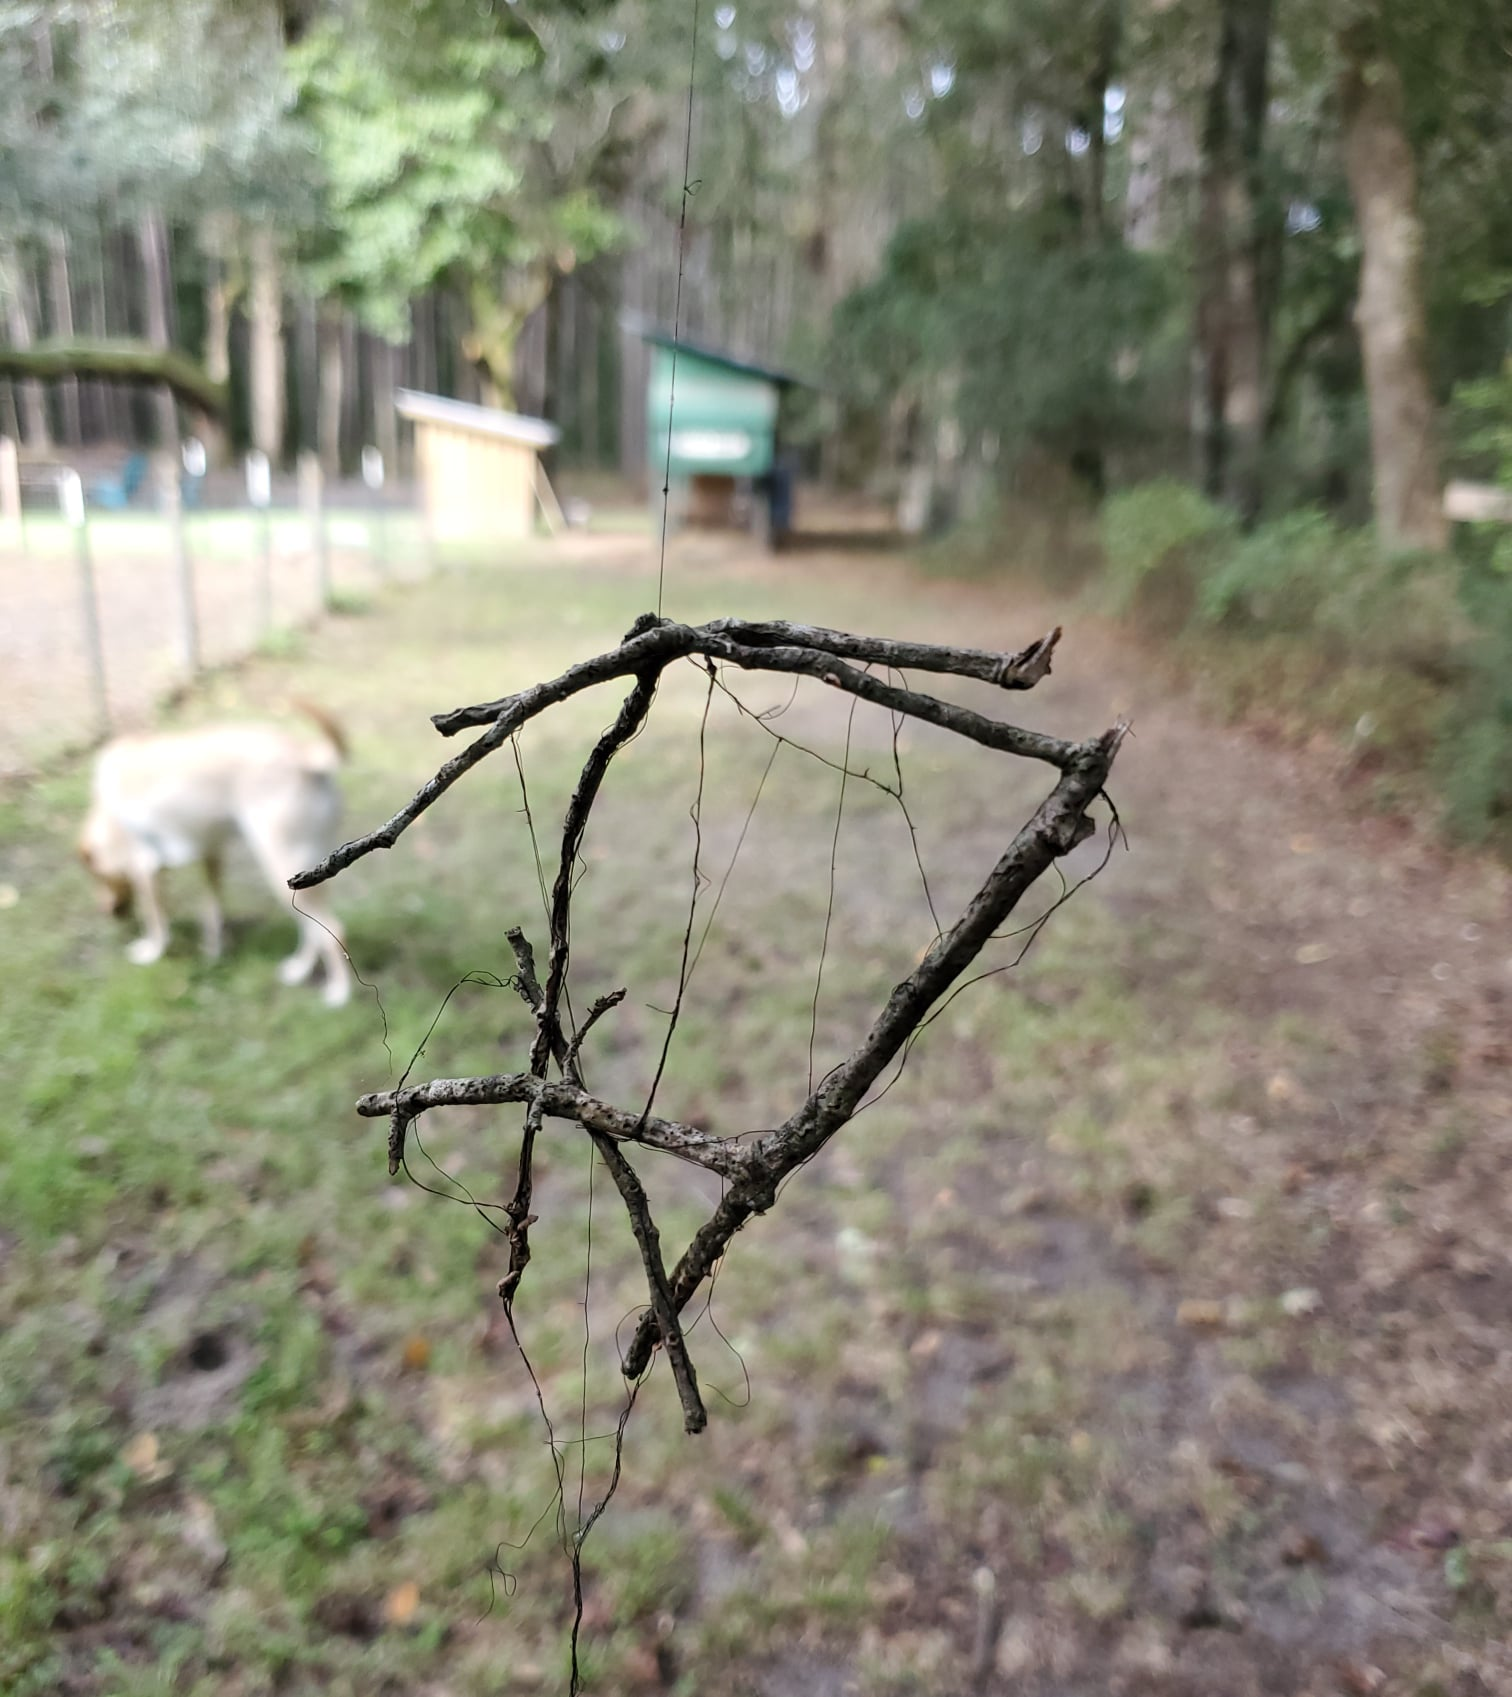 This is a picture of sticks hanging from a tree with grass, a white dog and a fence in the background.